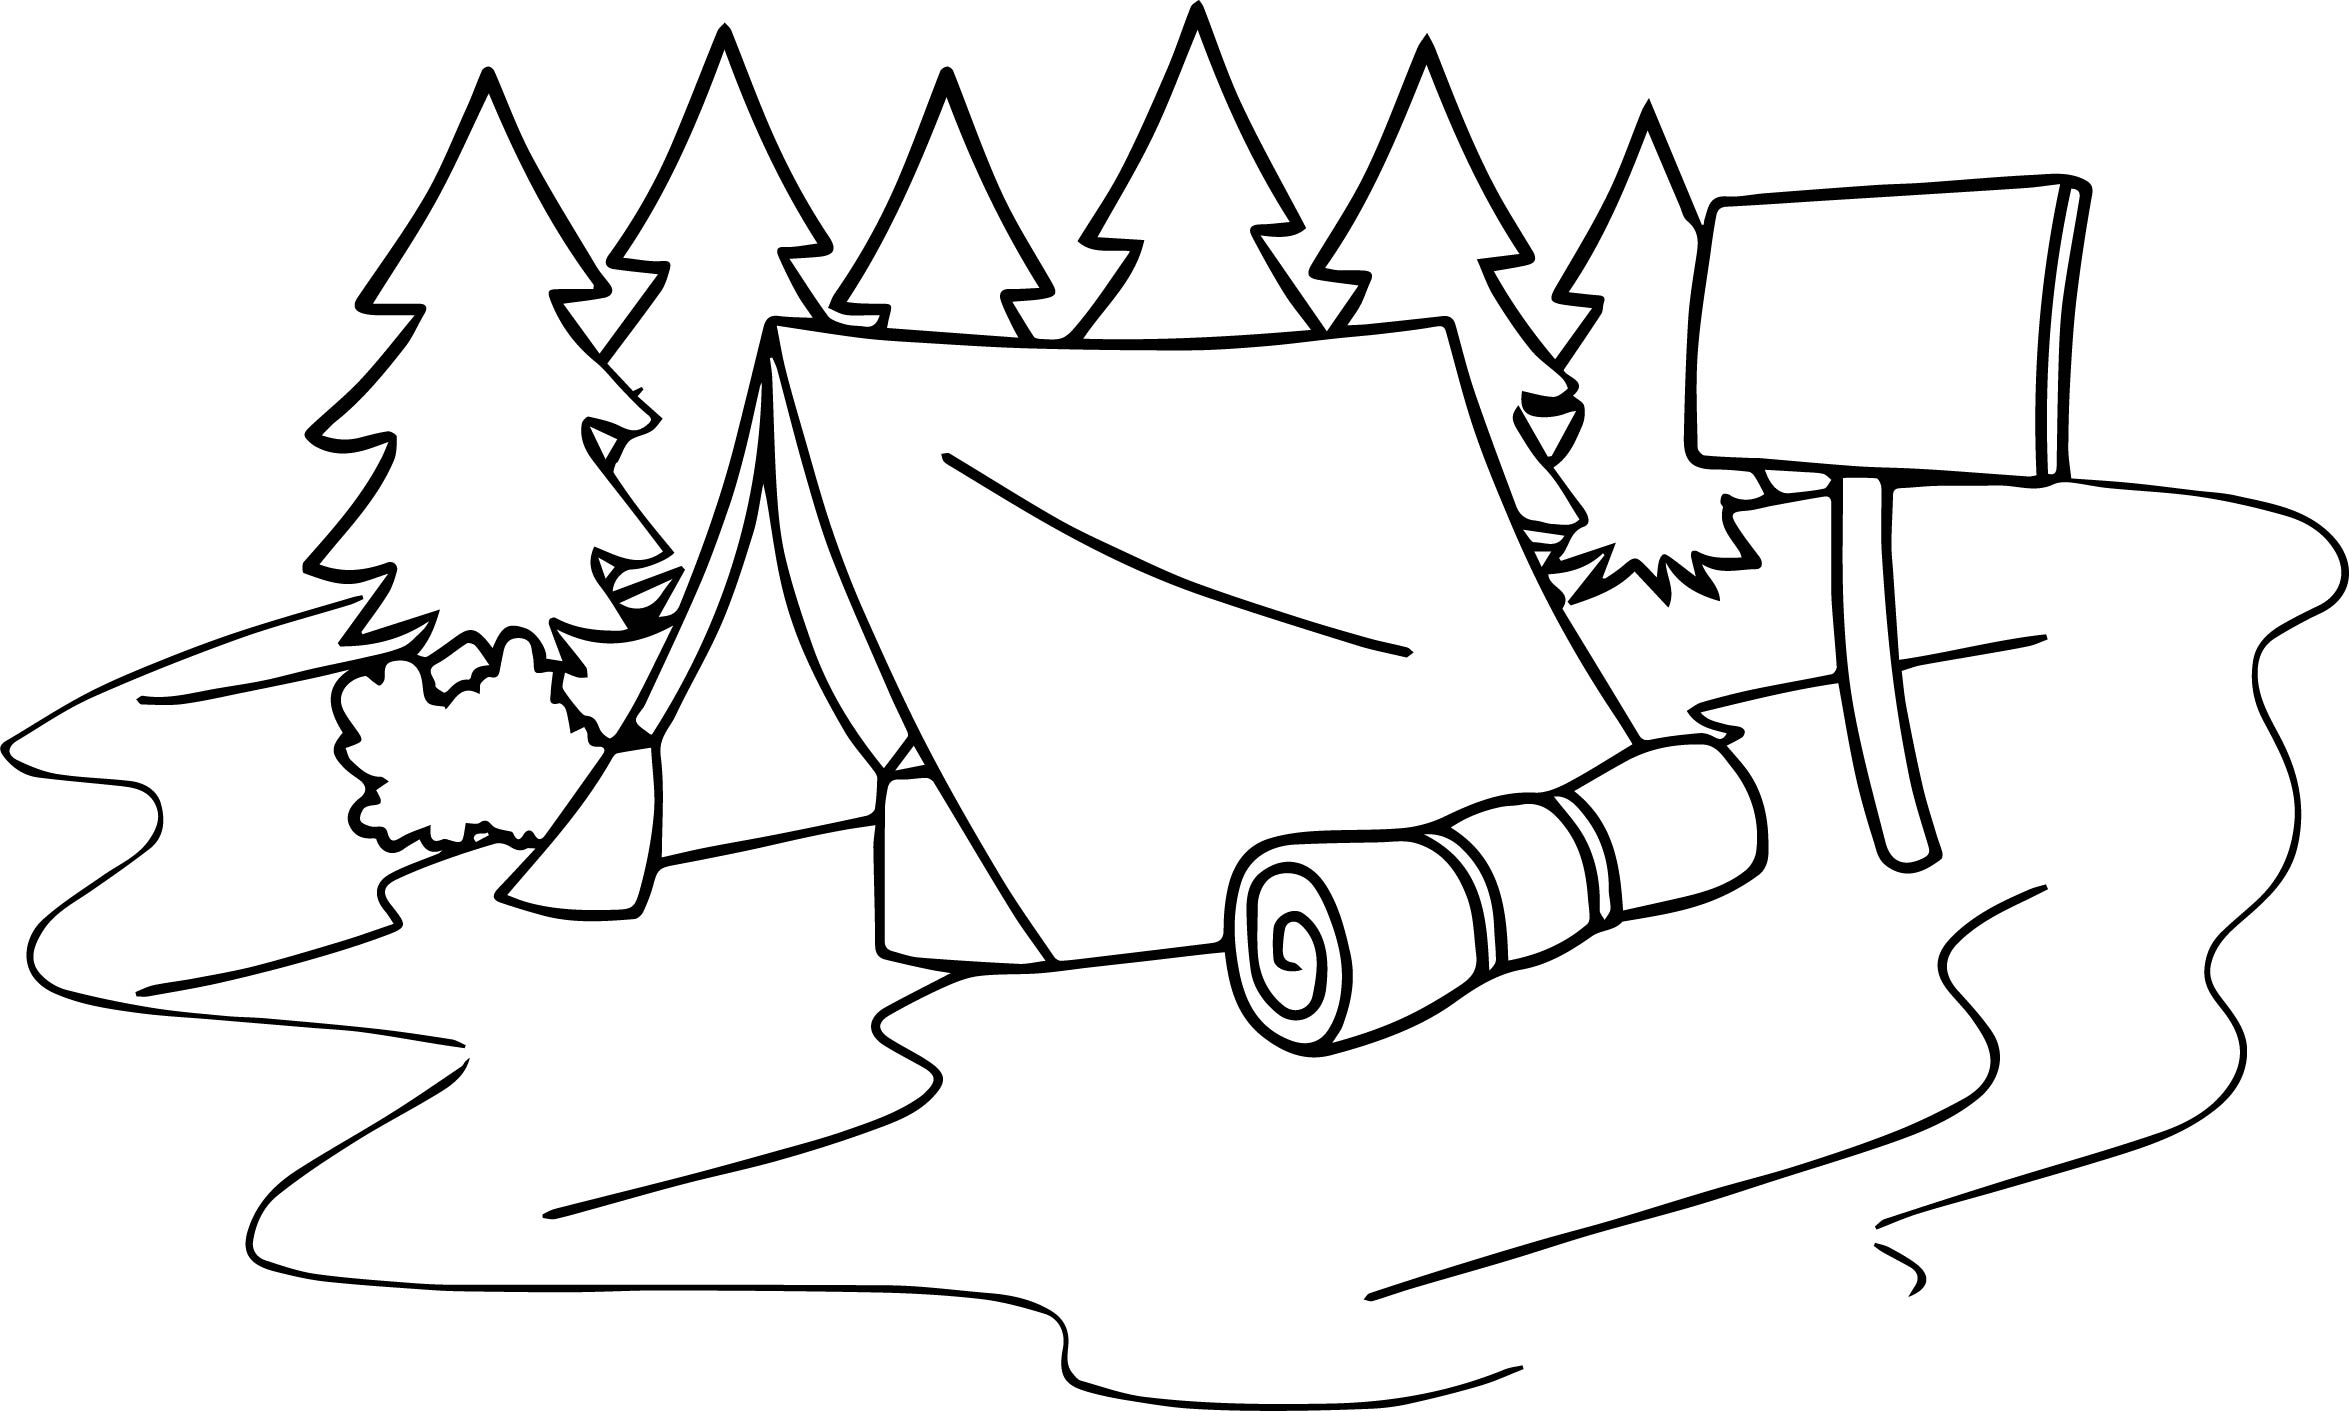 Summer camp tent sleeping bag camping coloring page for Camp coloring pages